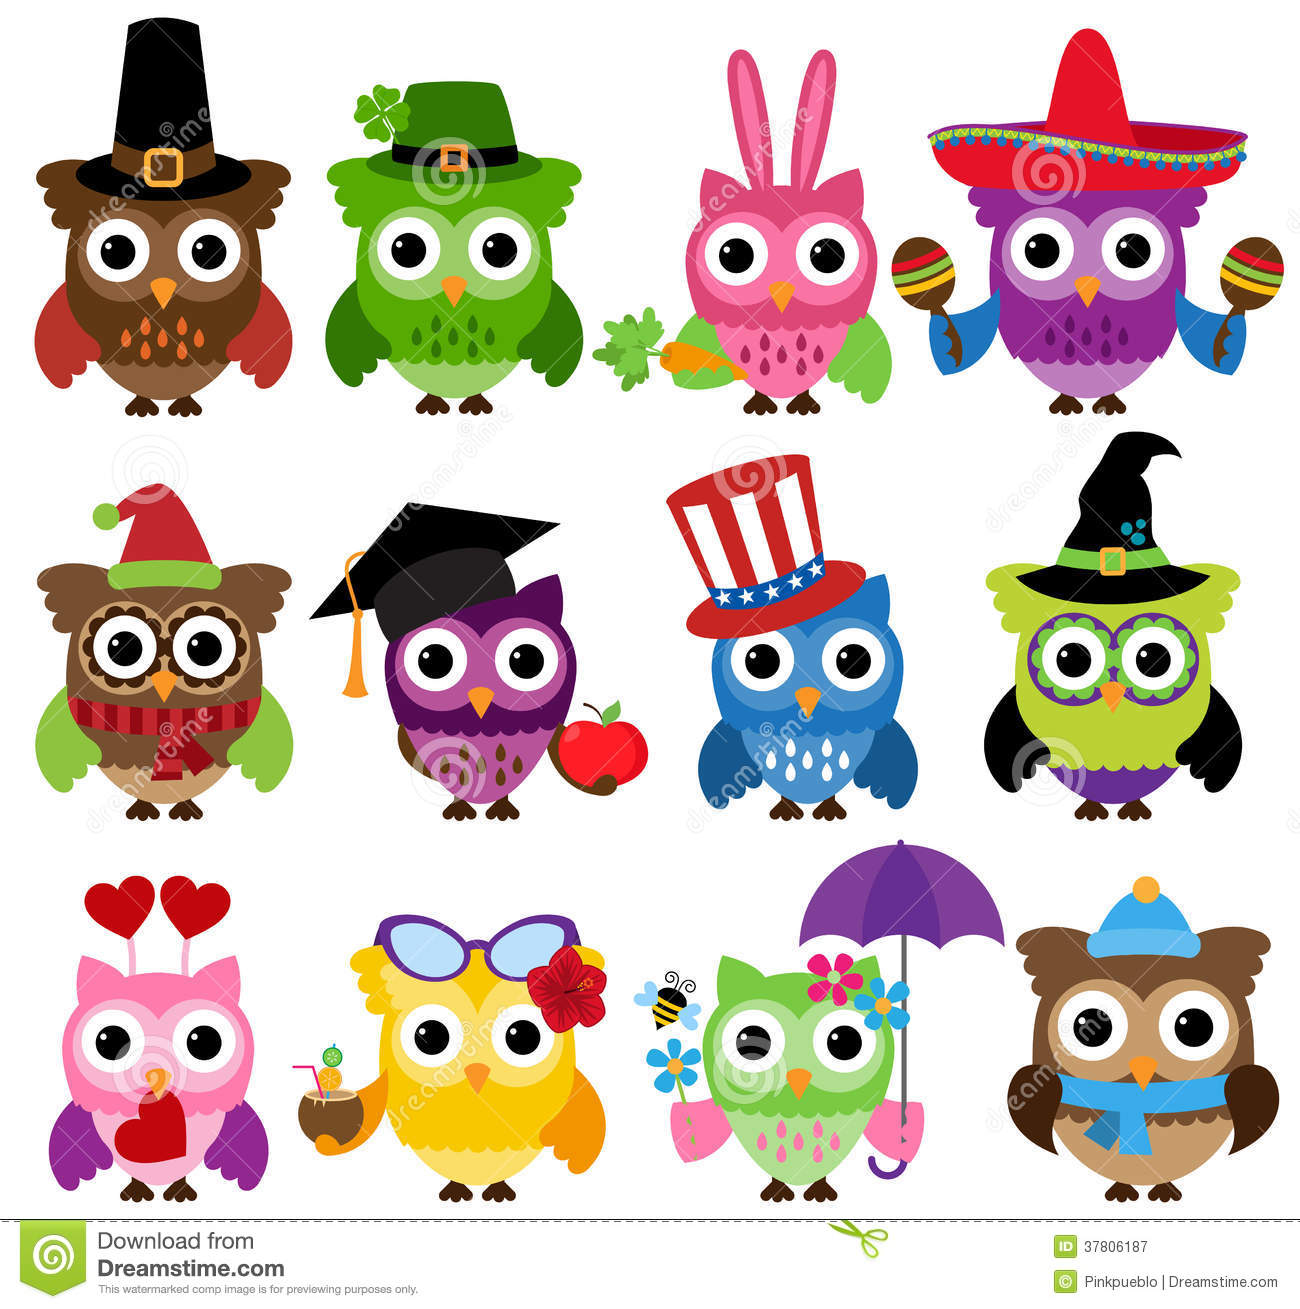 Cinco de Mayo Themed Collection of Owls